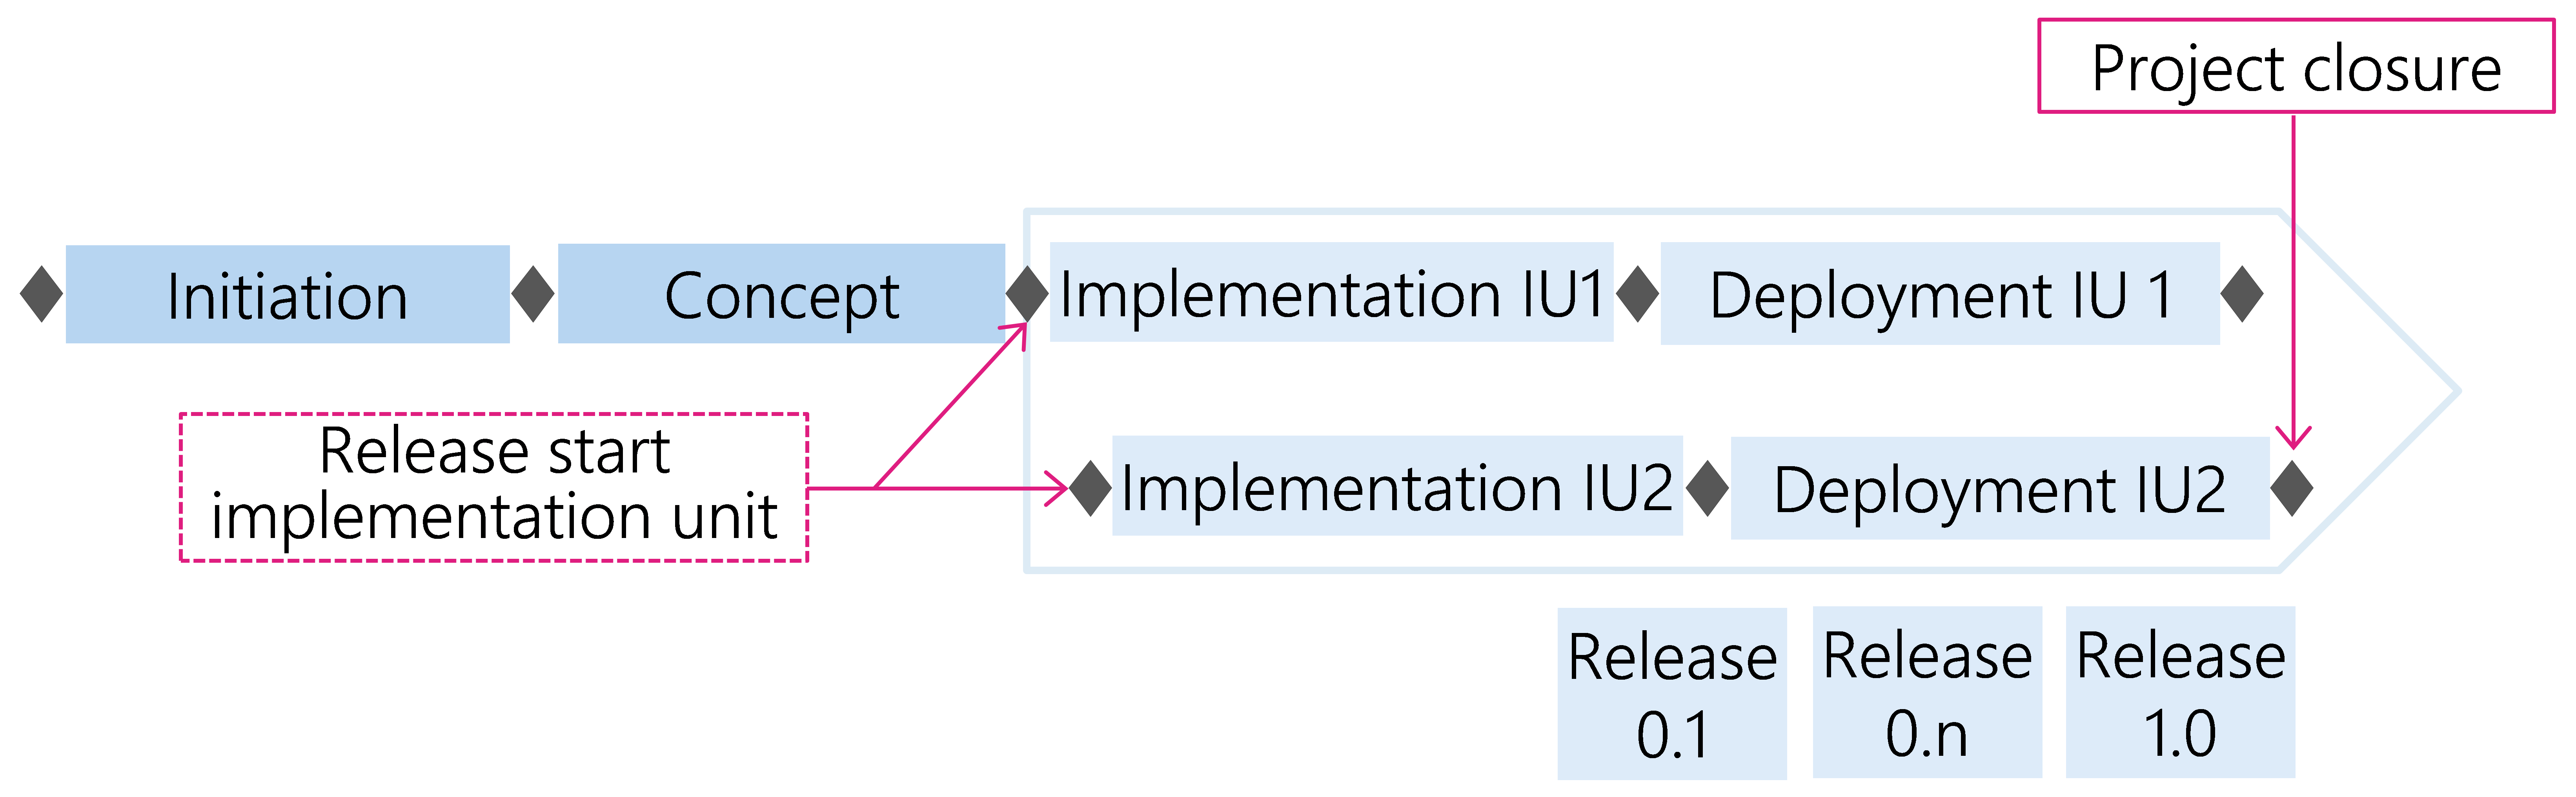 Figure 30: Time lag for implementation units (IU) with several releases